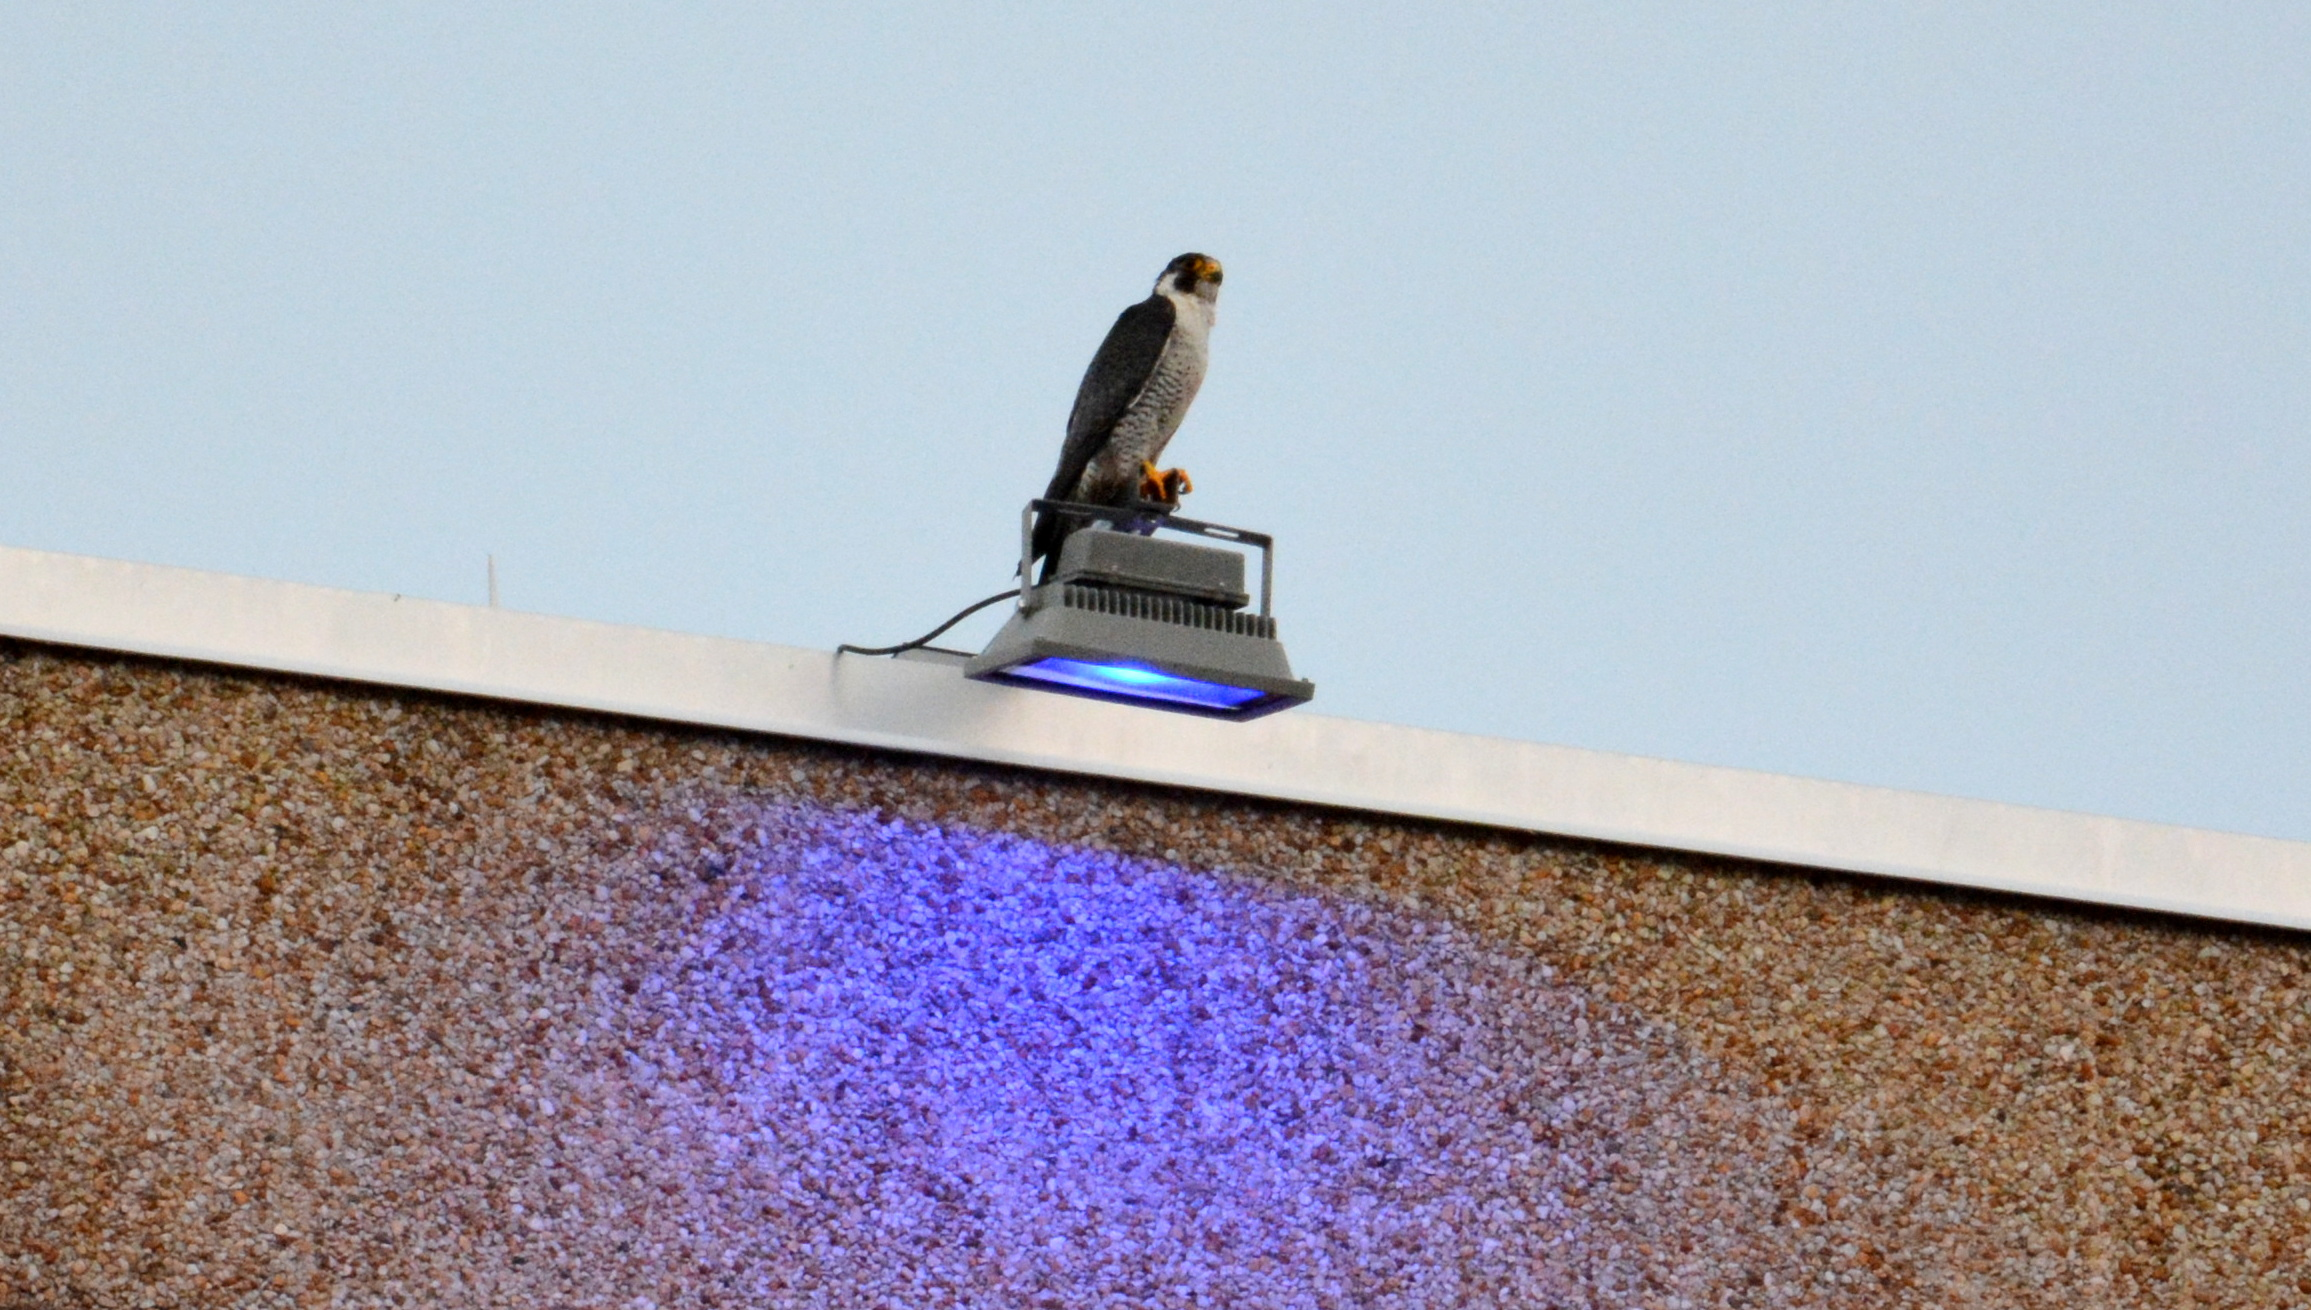 Ares perched on a light fixture on the county building